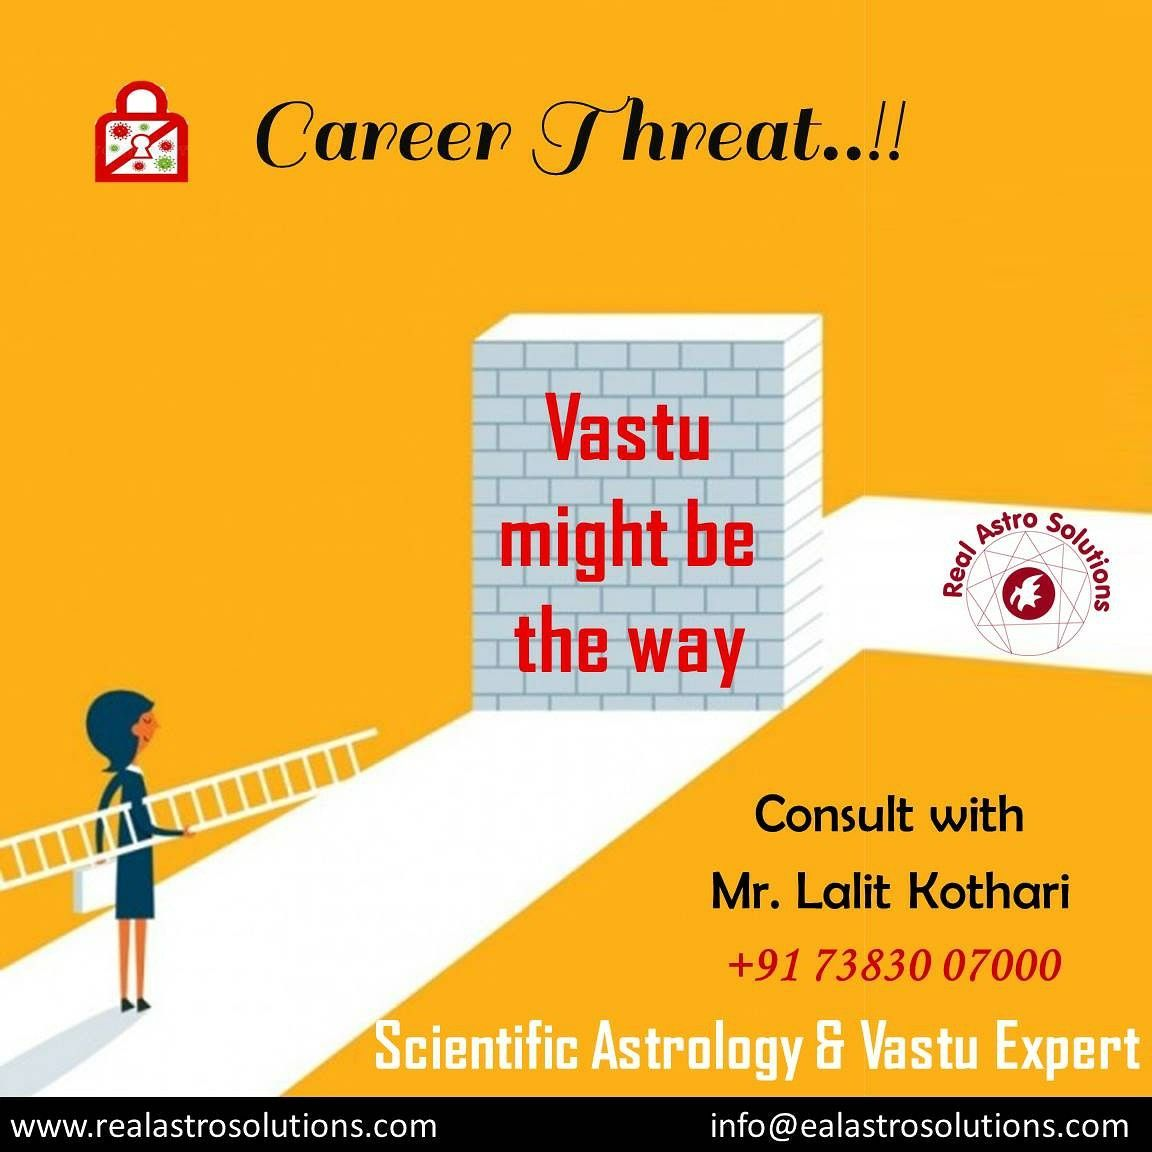 Is there a doubt about your career..... Get all the solutions of your questions.. Consult Dr. Lalit Kothari, scientific and vastu expert.. #realastrology #astrology #palmistry #numerology #expert #vastuexpert #surat #vadodra #ahmedabad #gujarat #lalitkothari #kothari #BDKothari #therapist #vastusolutions #vision #insight #astrology #capabilities #power #philosophy #vitality #truth #destiny #healthandwellness #zodiac #scientific #vastuconsultant #doshanivaran